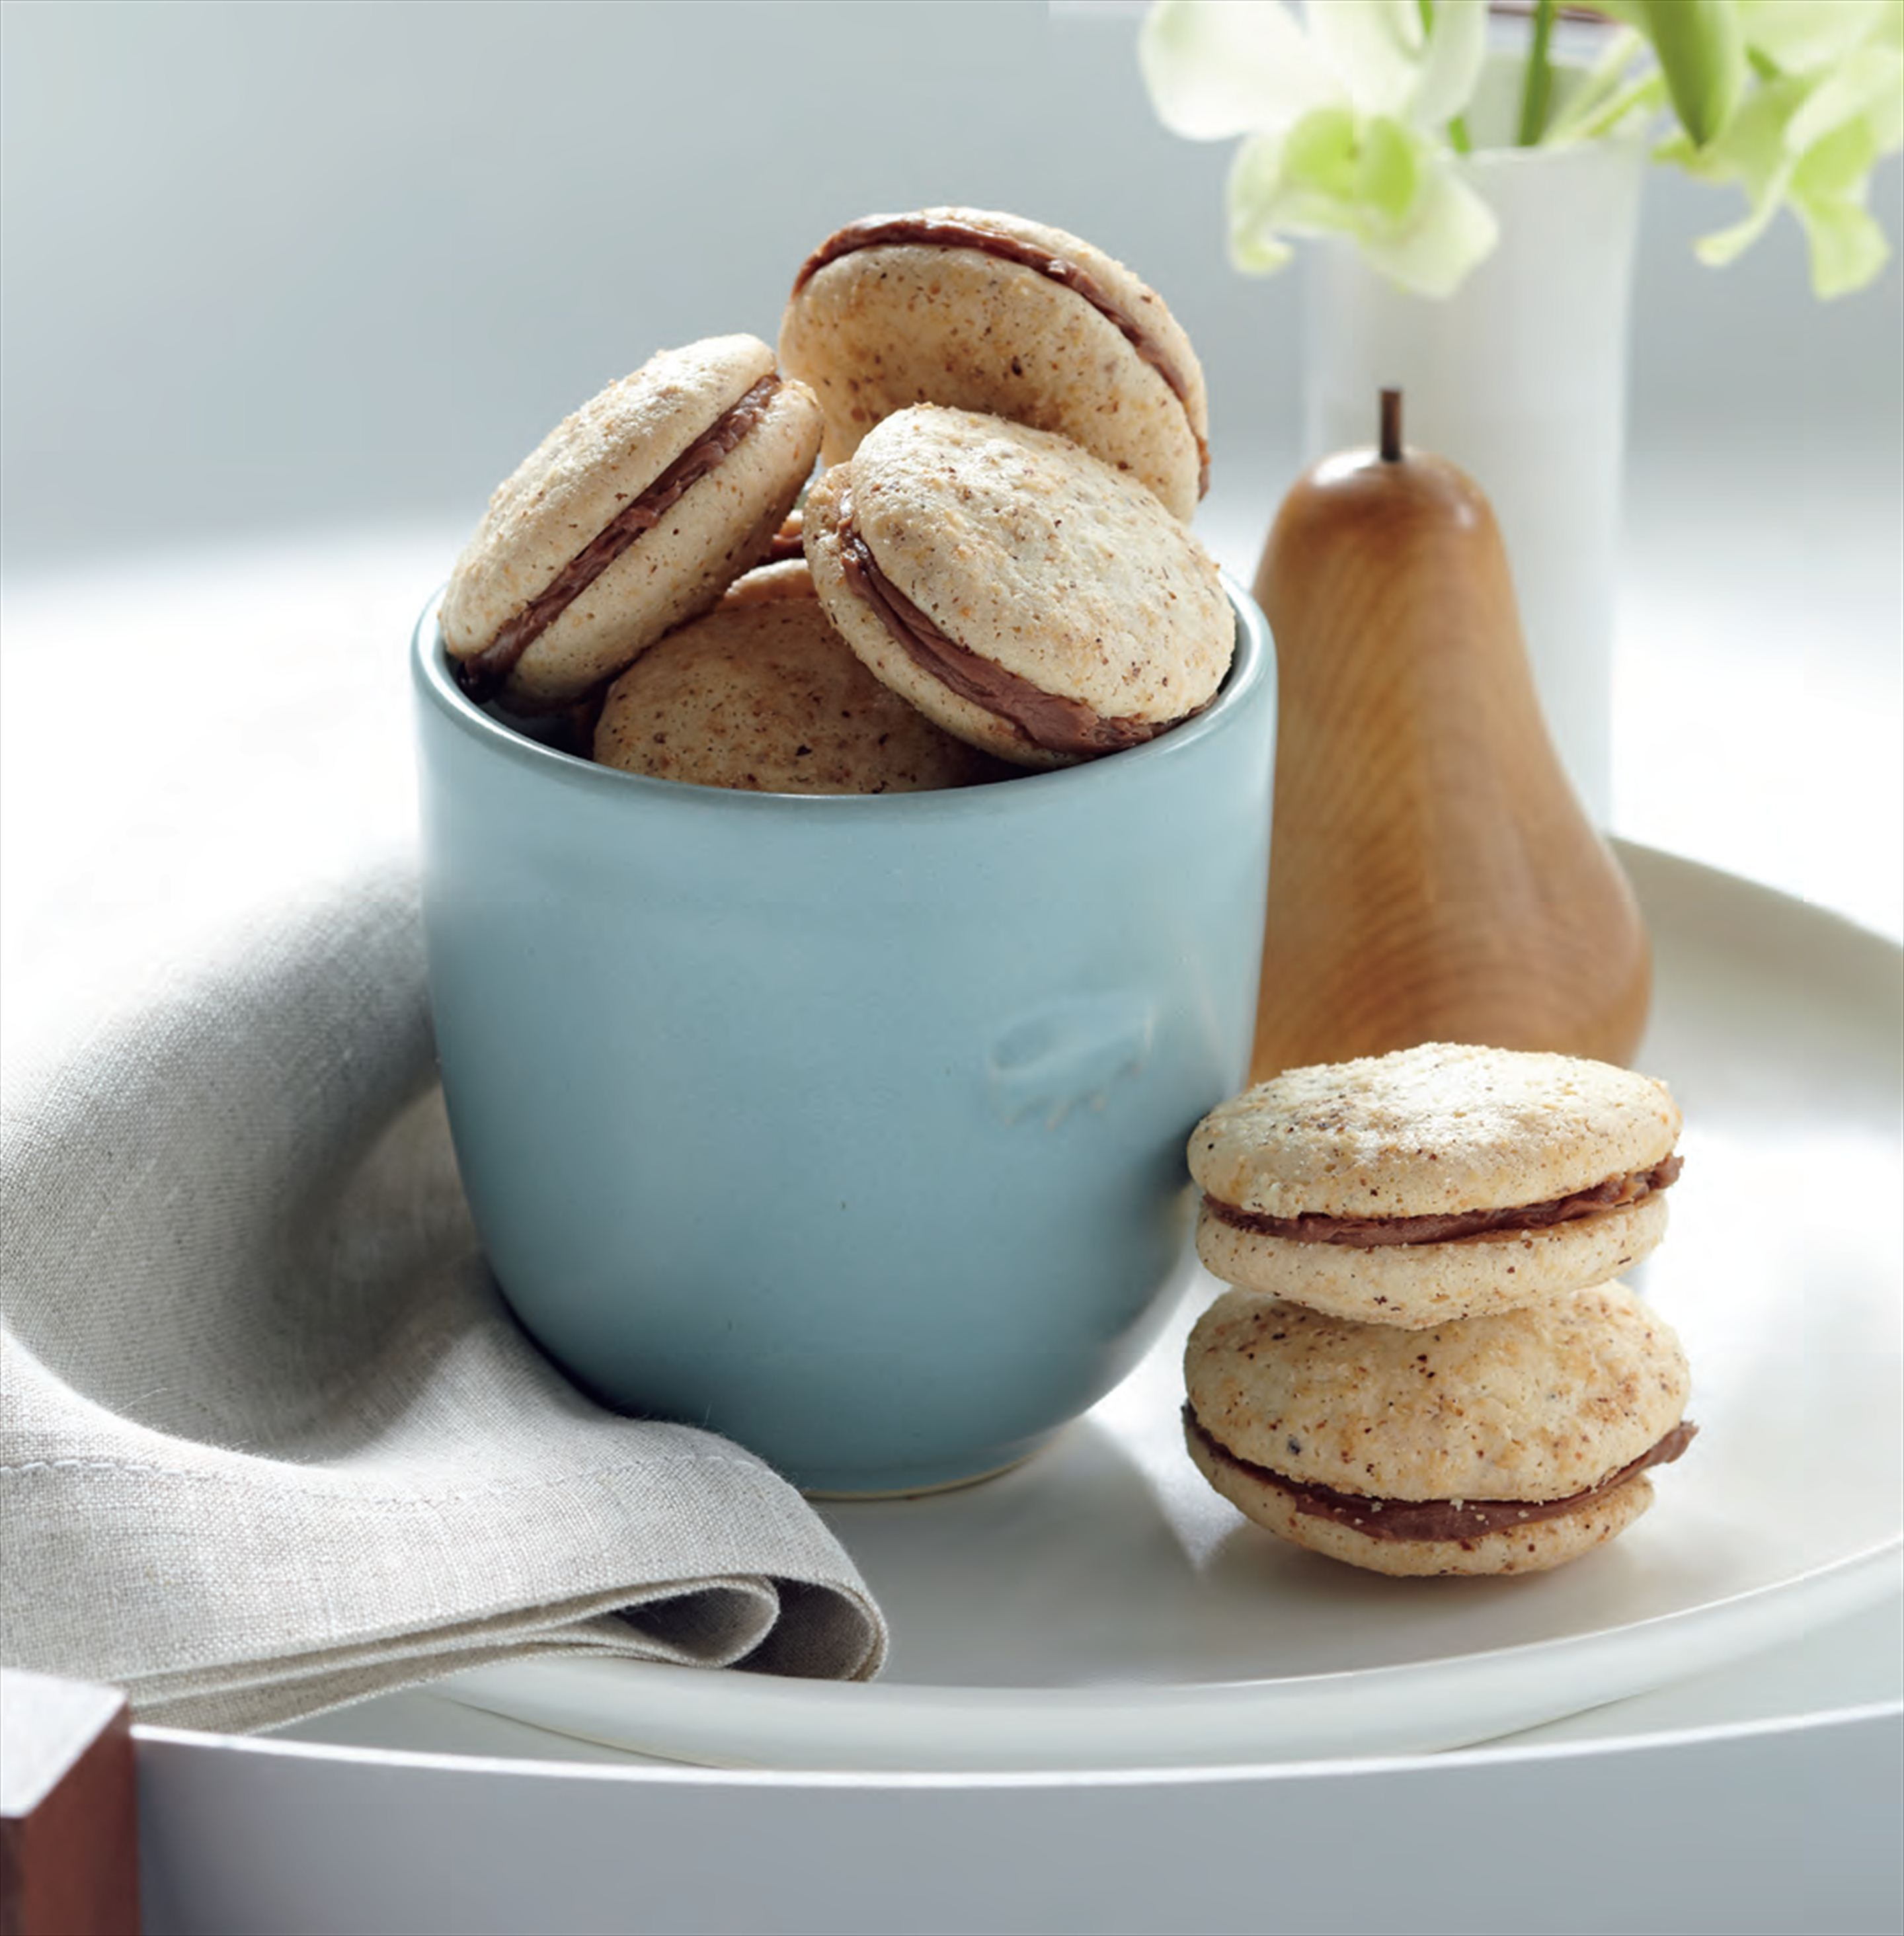 Hazelnut macarons with chocolate and Frangelico